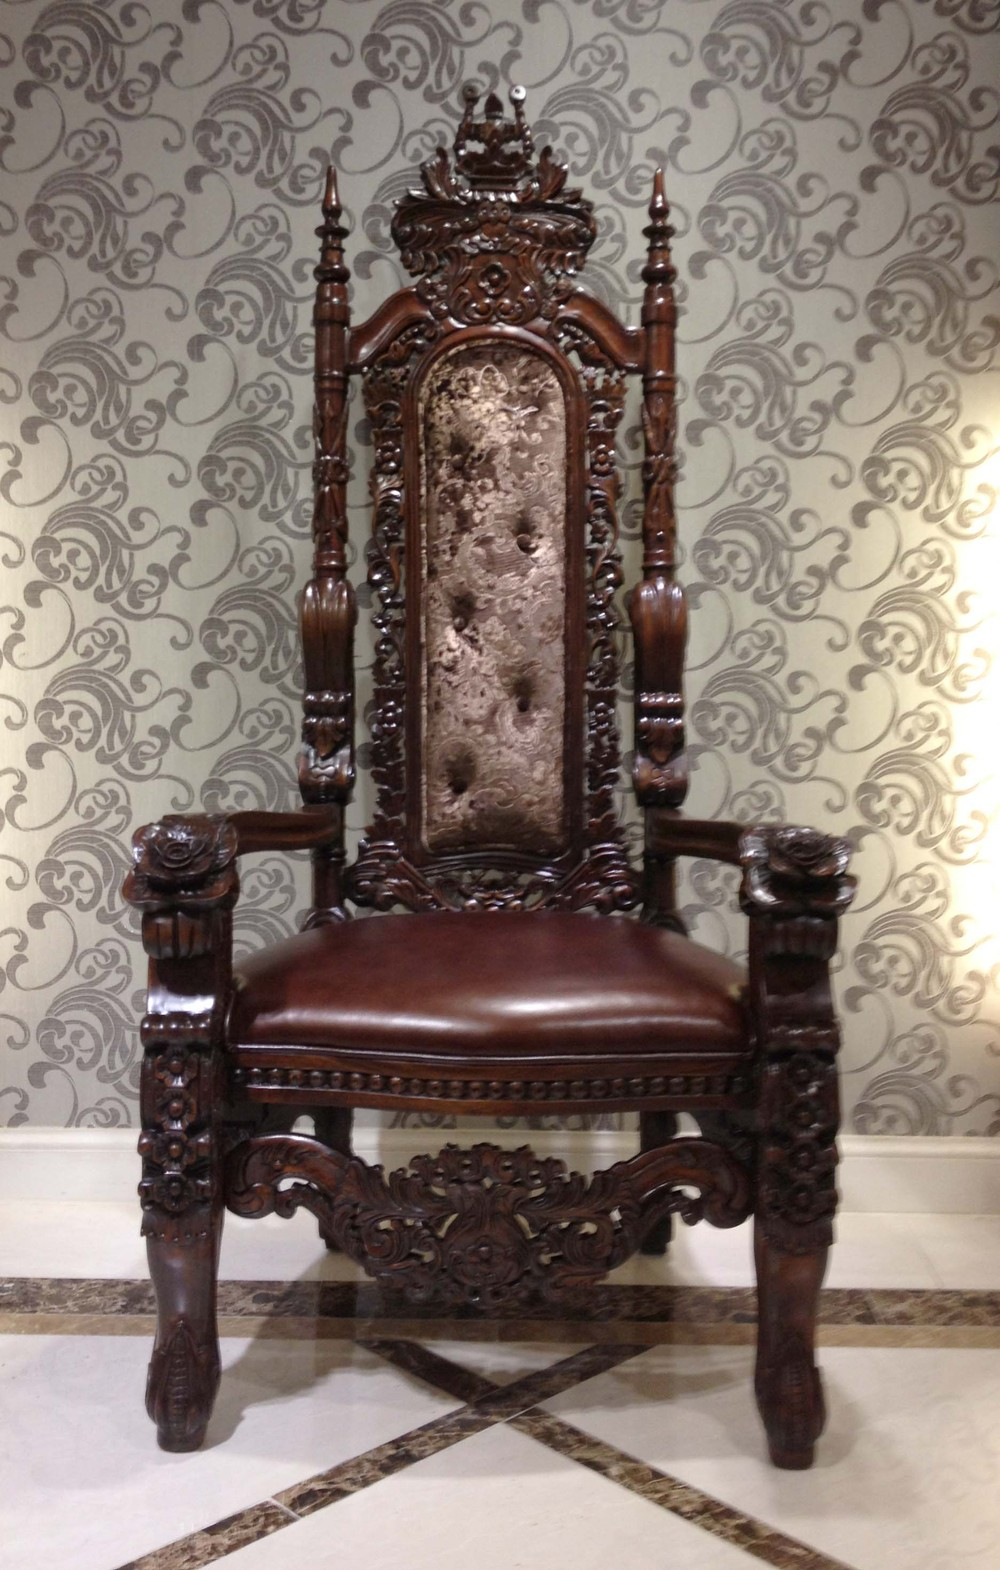 JPG - American Style Furniture Sofa Chair,Antique Luxury - Antique Throne Chairs Antique Furniture